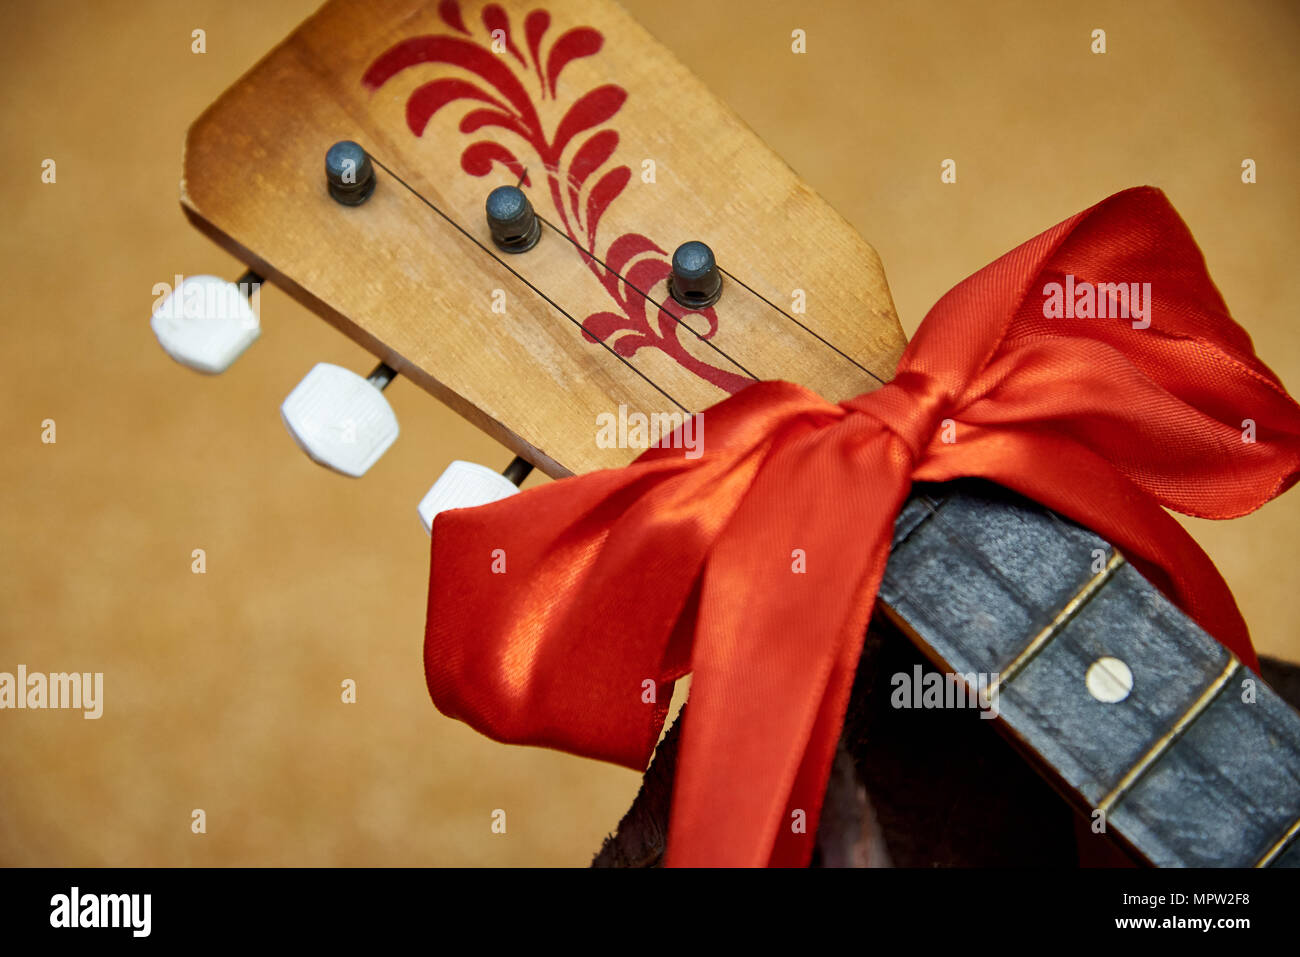 Russian balalaika with bow close-up - Stock Image